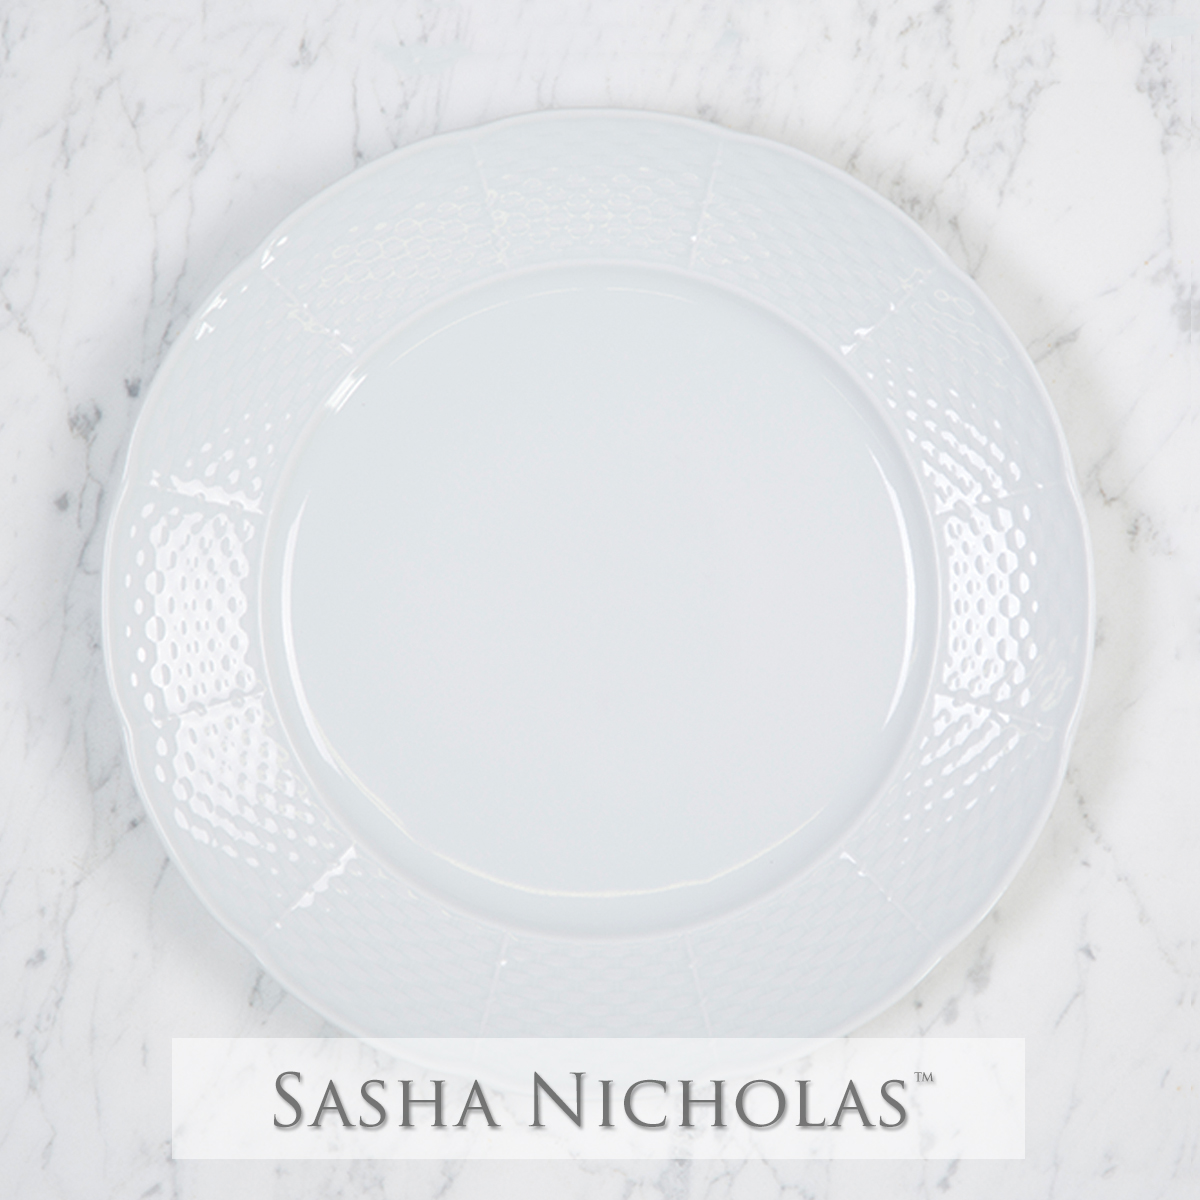 A beautiful addition to your dinnerware collection and to adorn your tablescapes with. It makes the perfect gift for your wedding registry and has the option to include an inscription on back. Choose from their signature font styles or use a custom monogram or crest of your choice! | Sasha Nicholas‰Ûªs white porcelain weave dinner plate